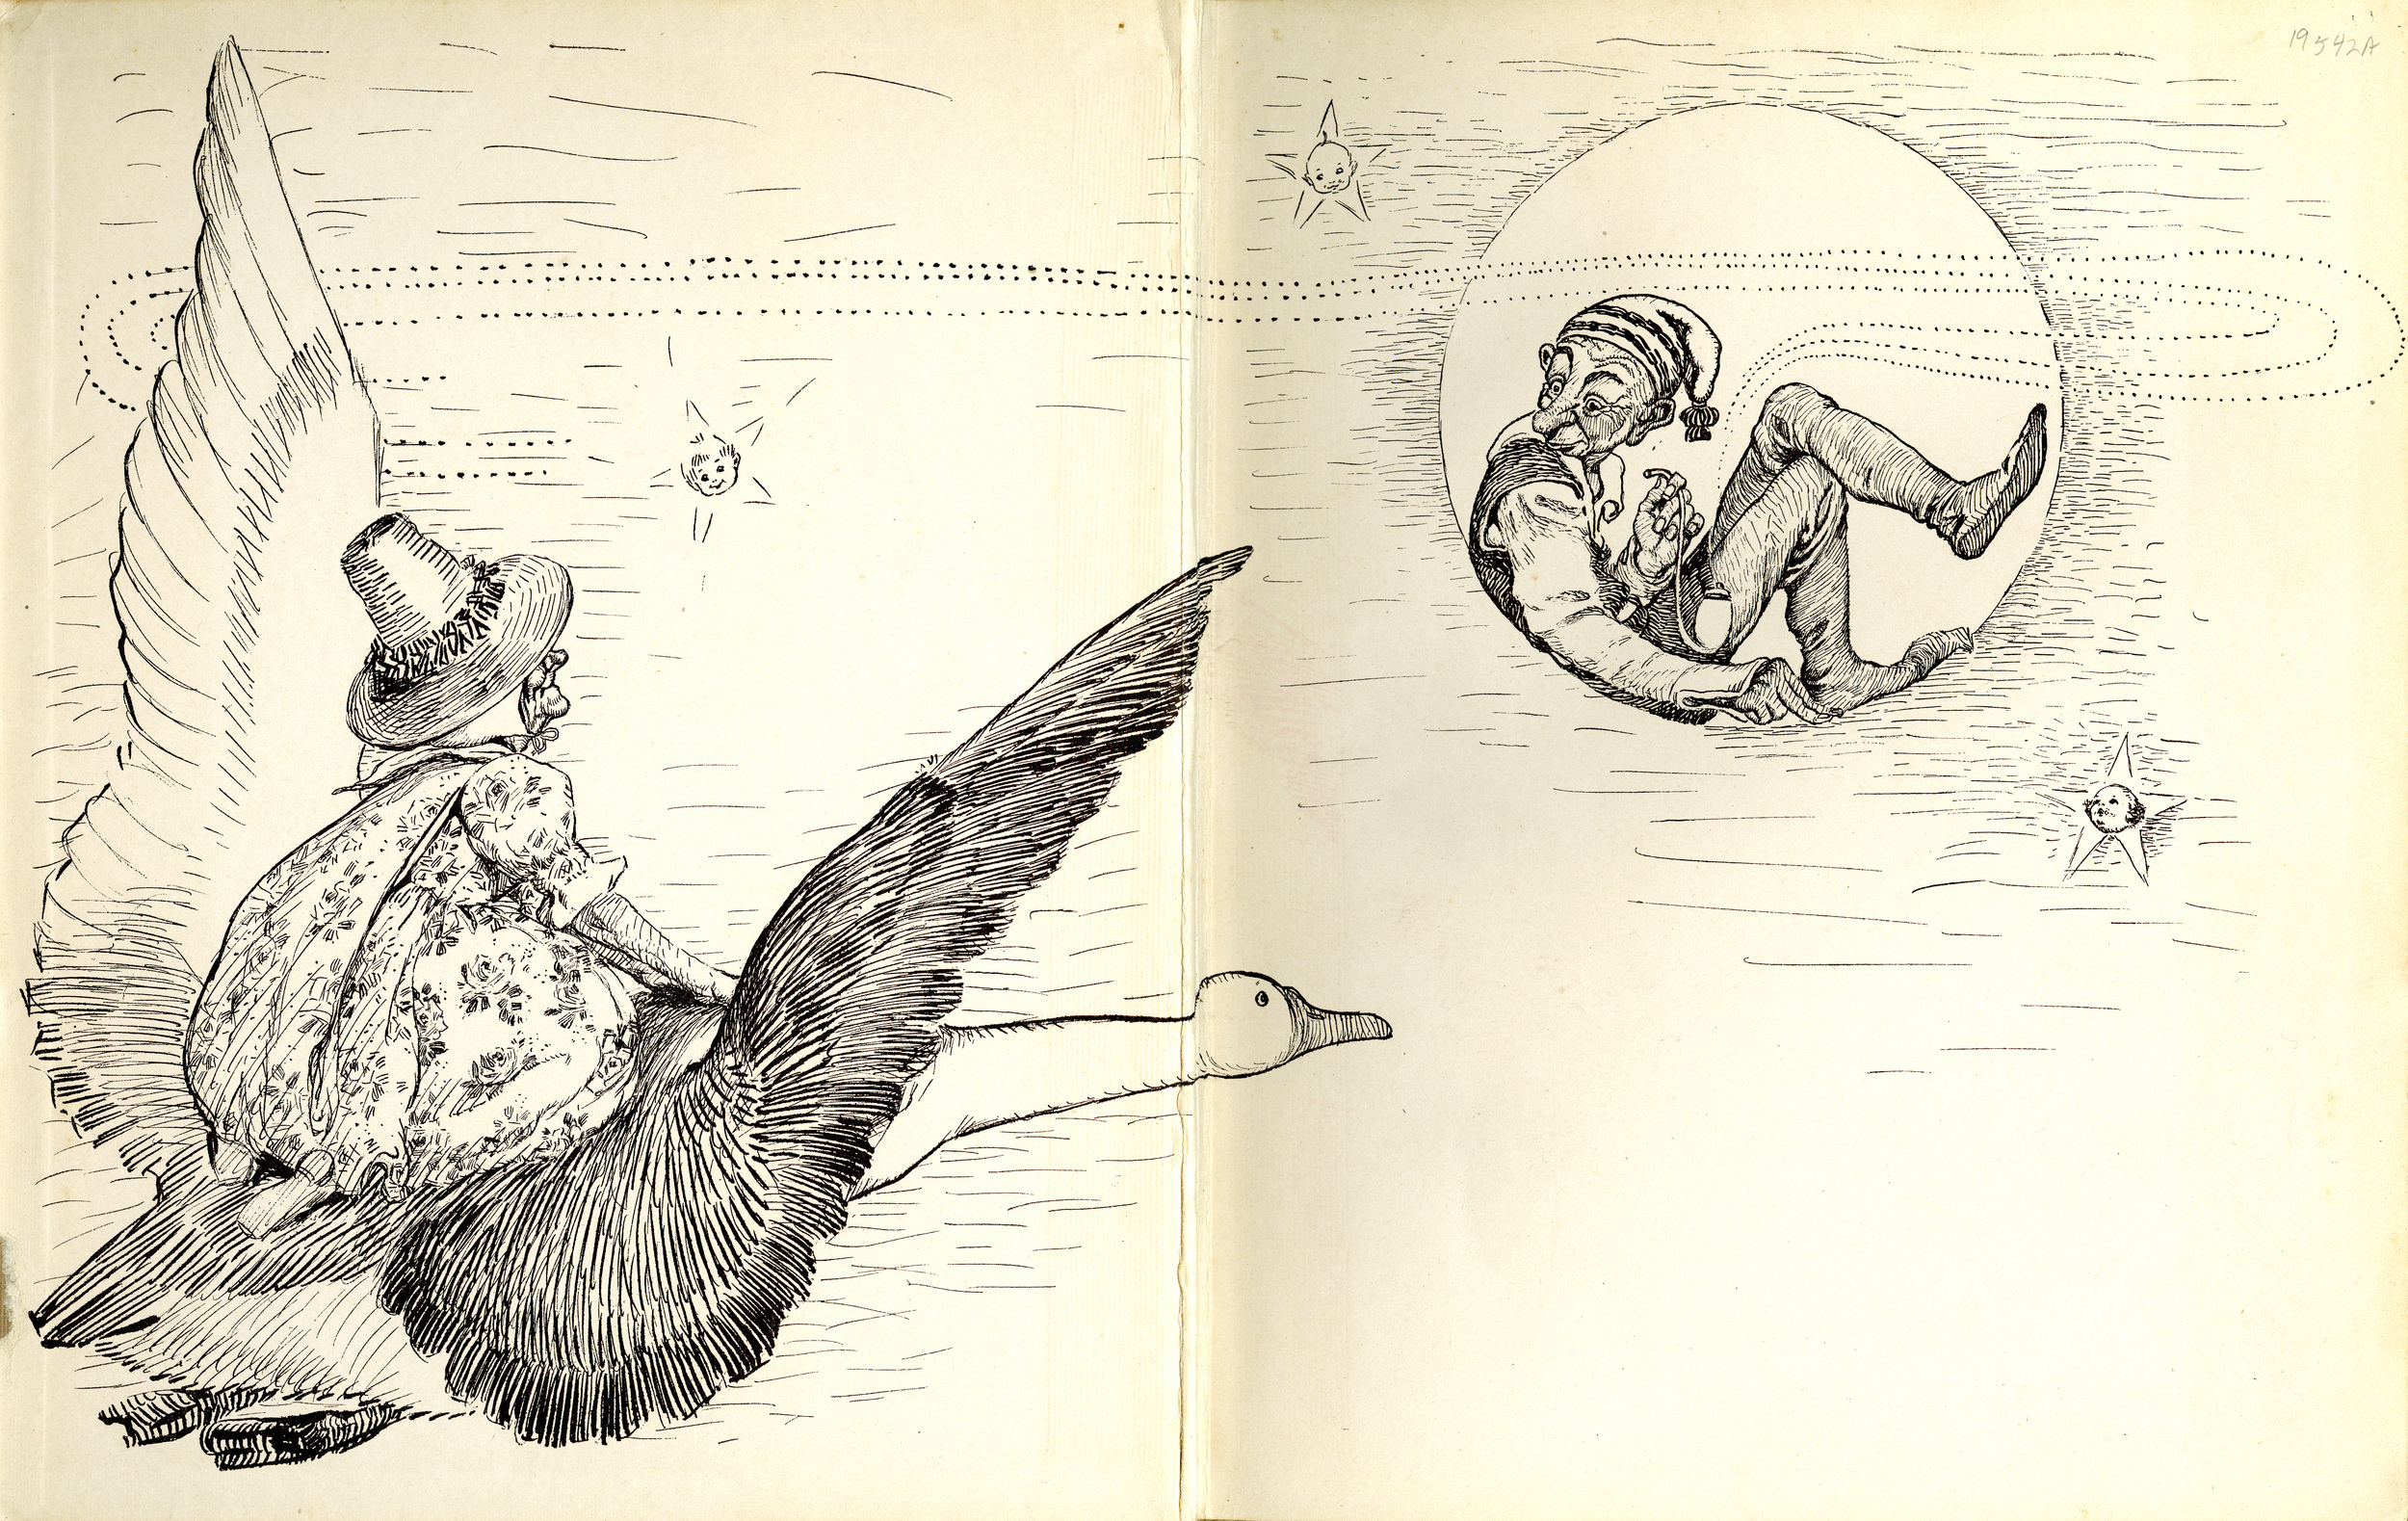 FY Cory, endpapers for  The Fanny Cory   Mother Goose. Bobs-Merrill Company Publishers. 1913.